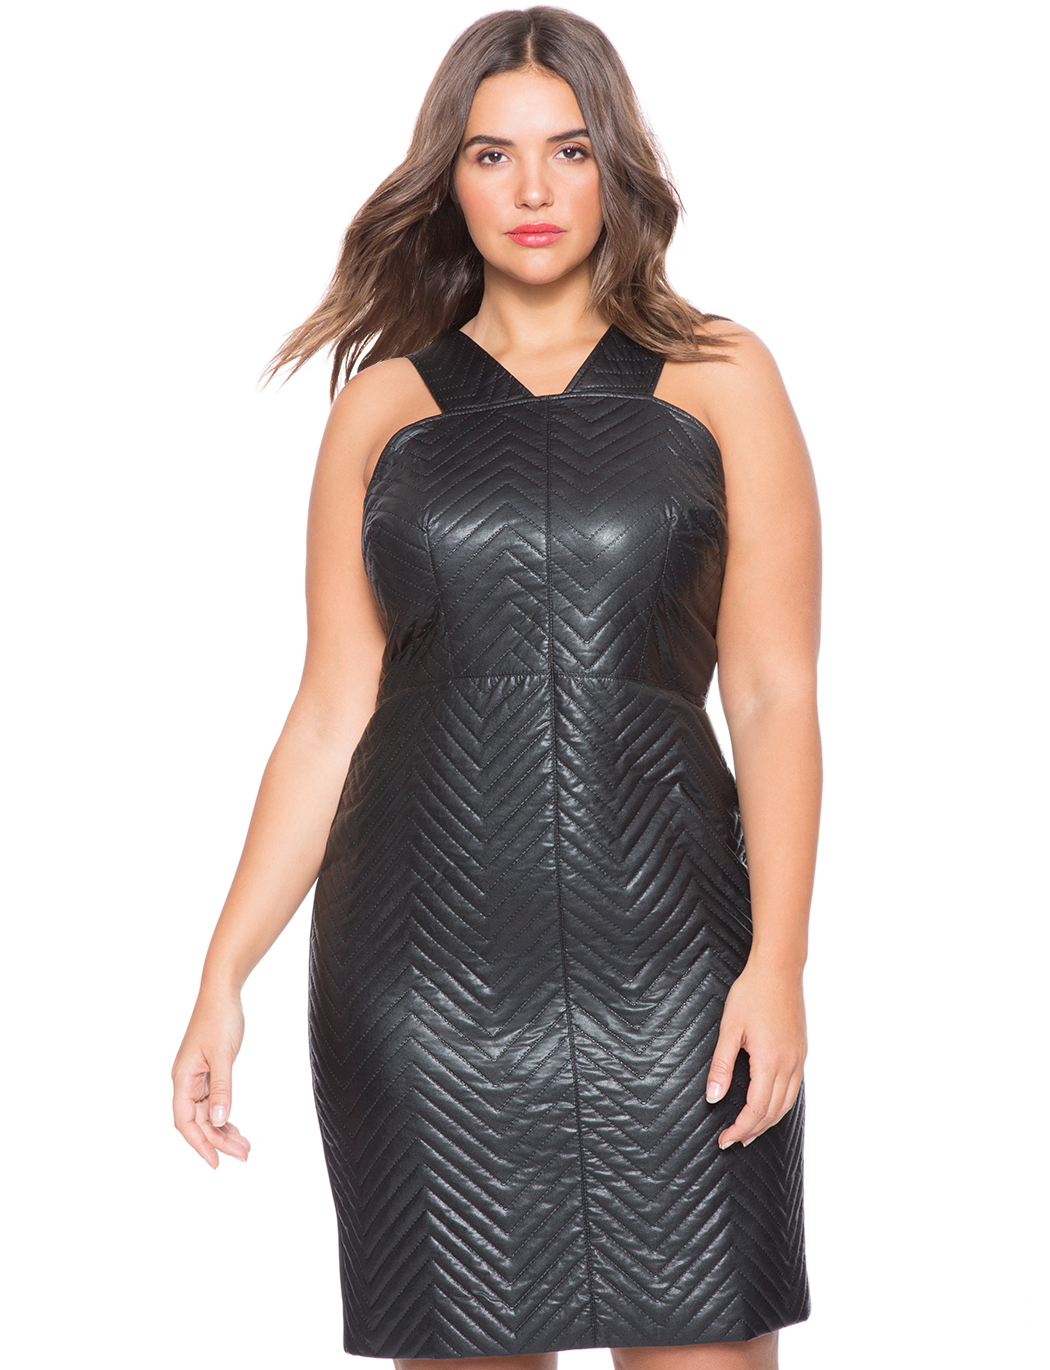 Quilted Faux Leather Dress | Women\'s Plus Size Dresses | ELOQUII